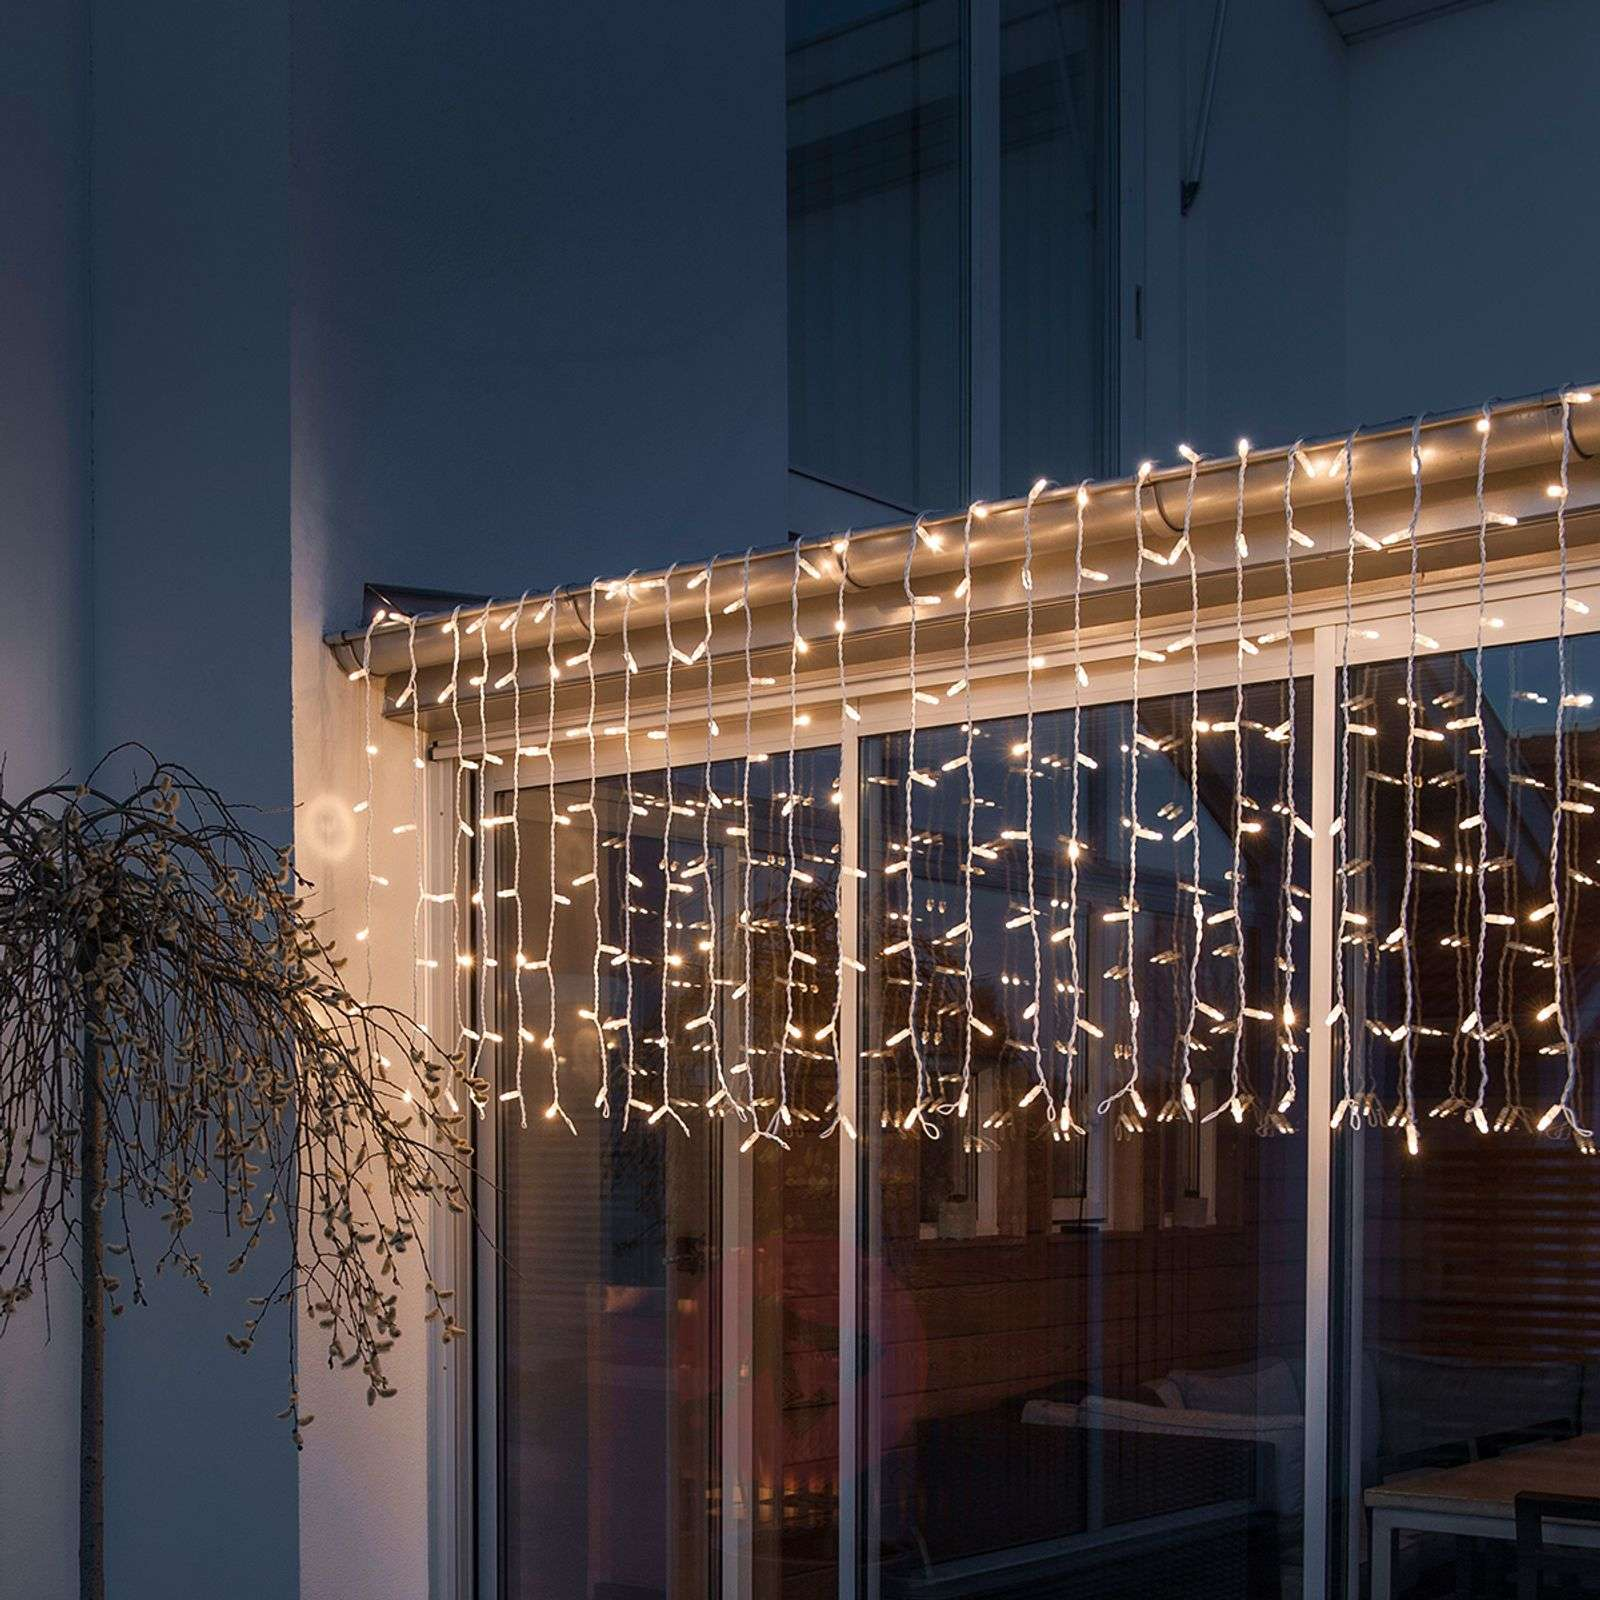 Extension syst. rideau lum. LED 24V, 104 lampes-5524517-01